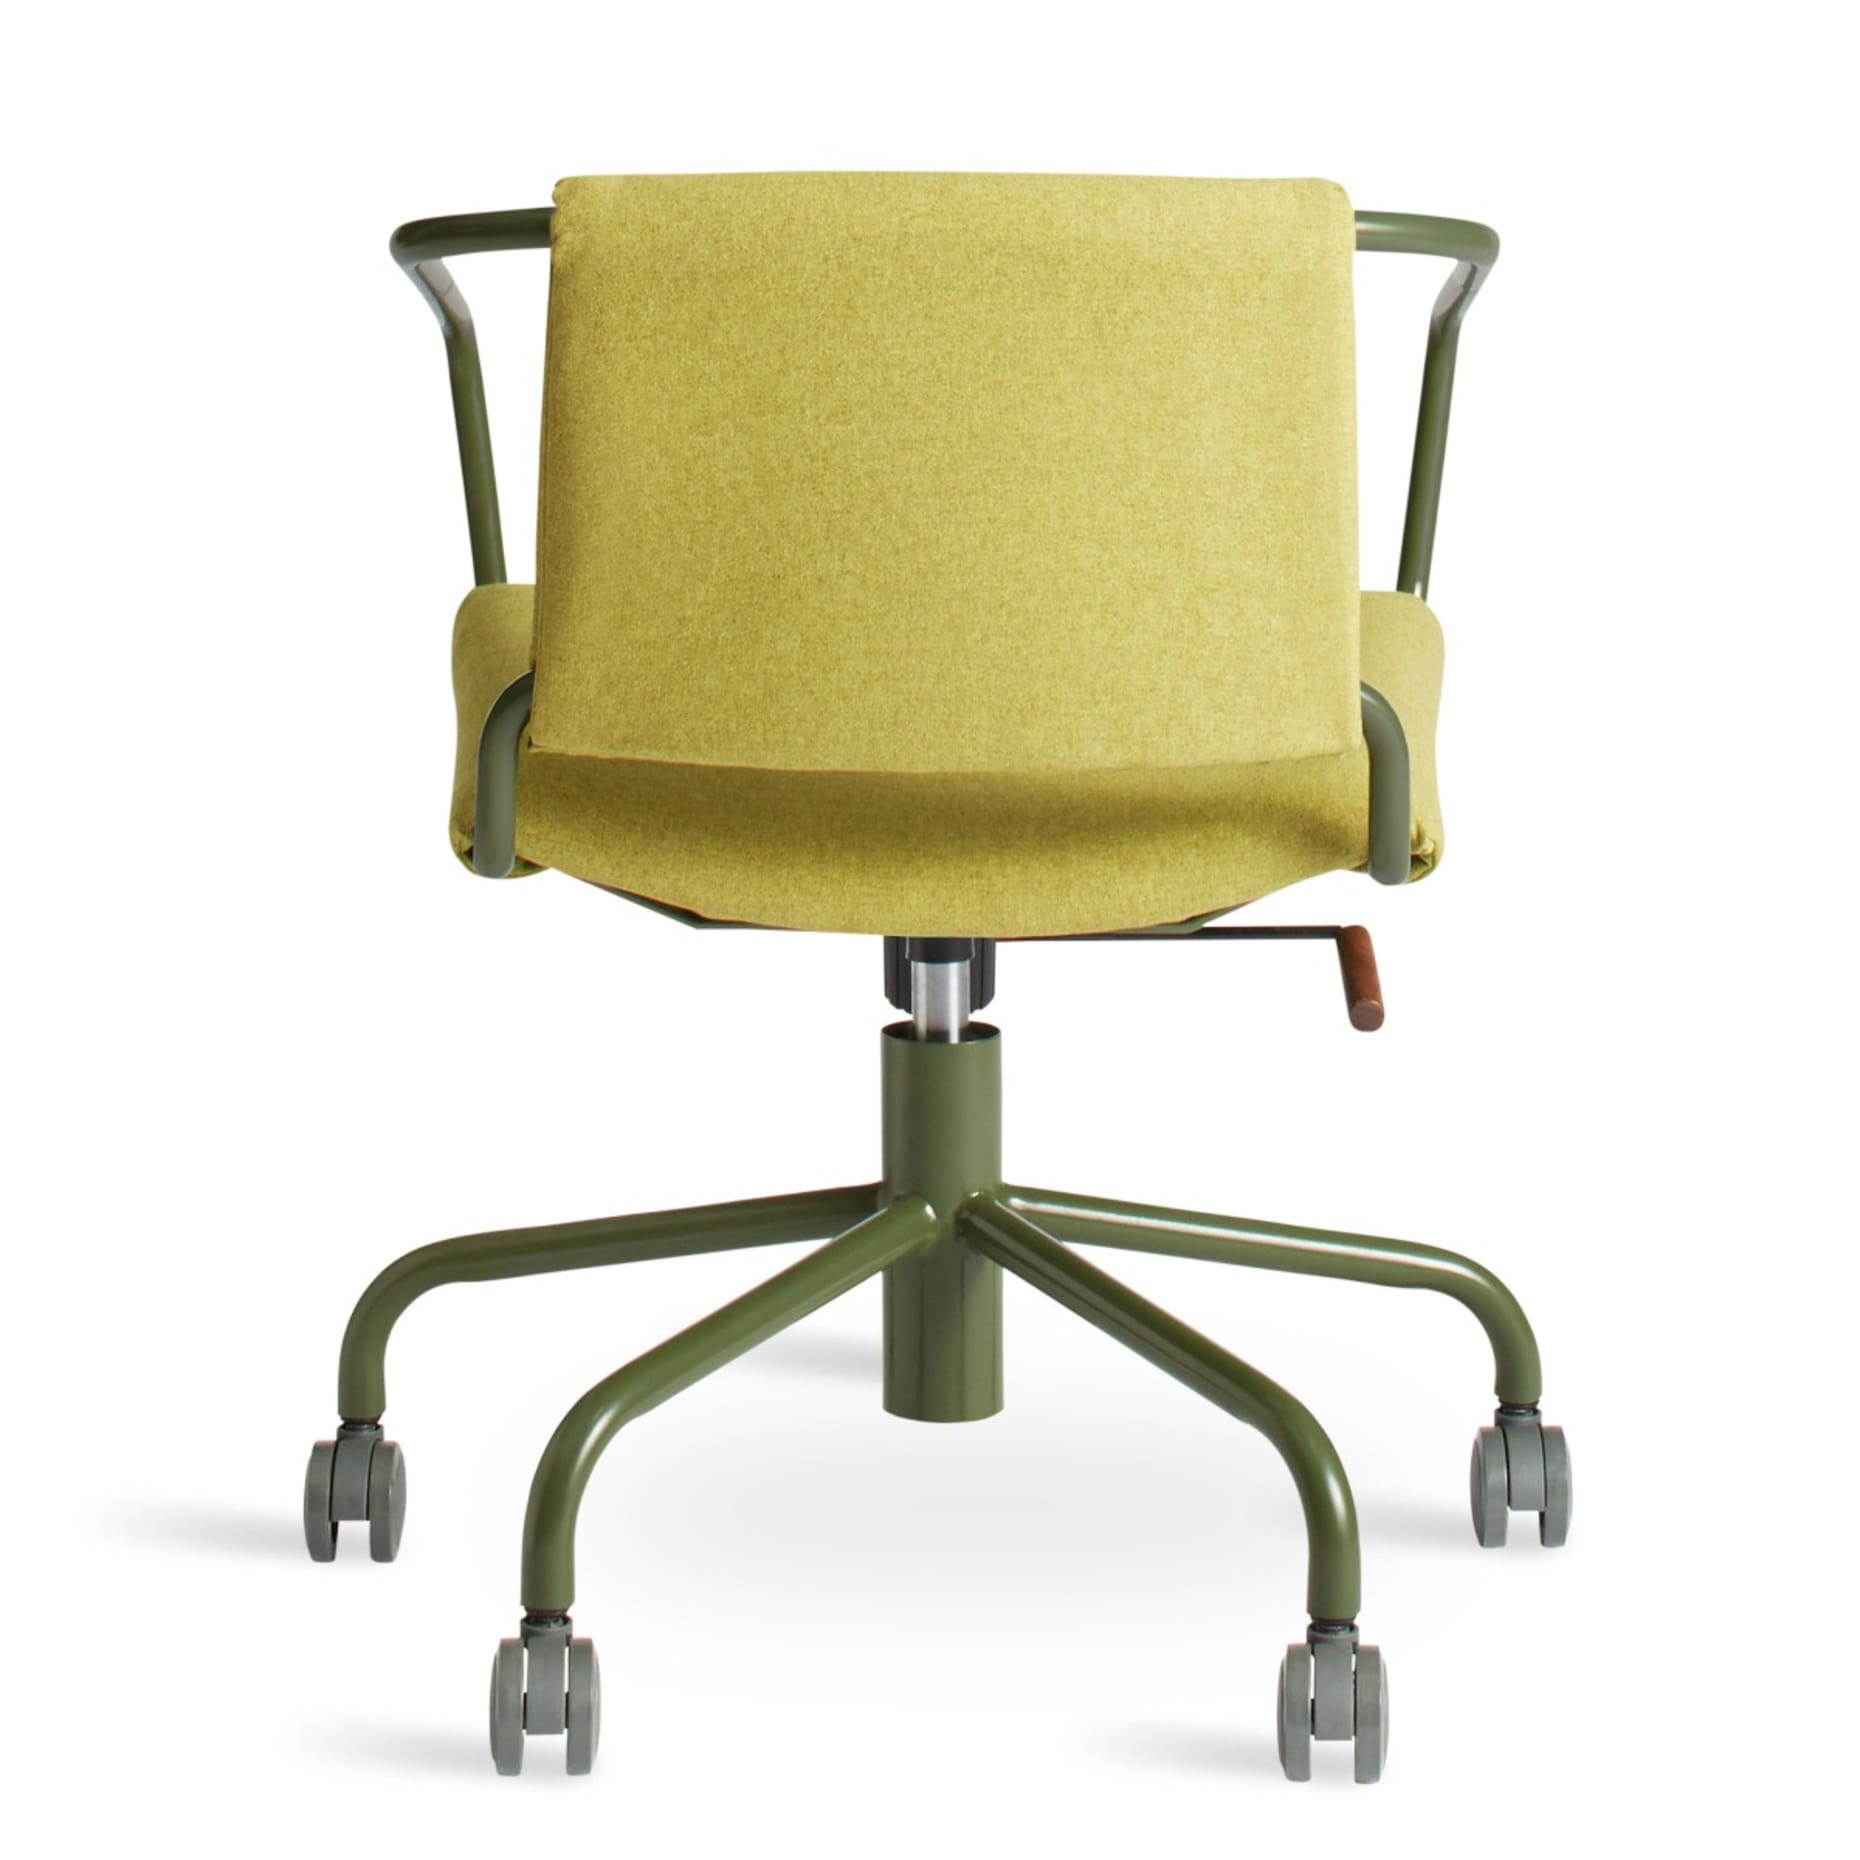 dy1 tchair gr back high daily task chair gingrich green.2x 1